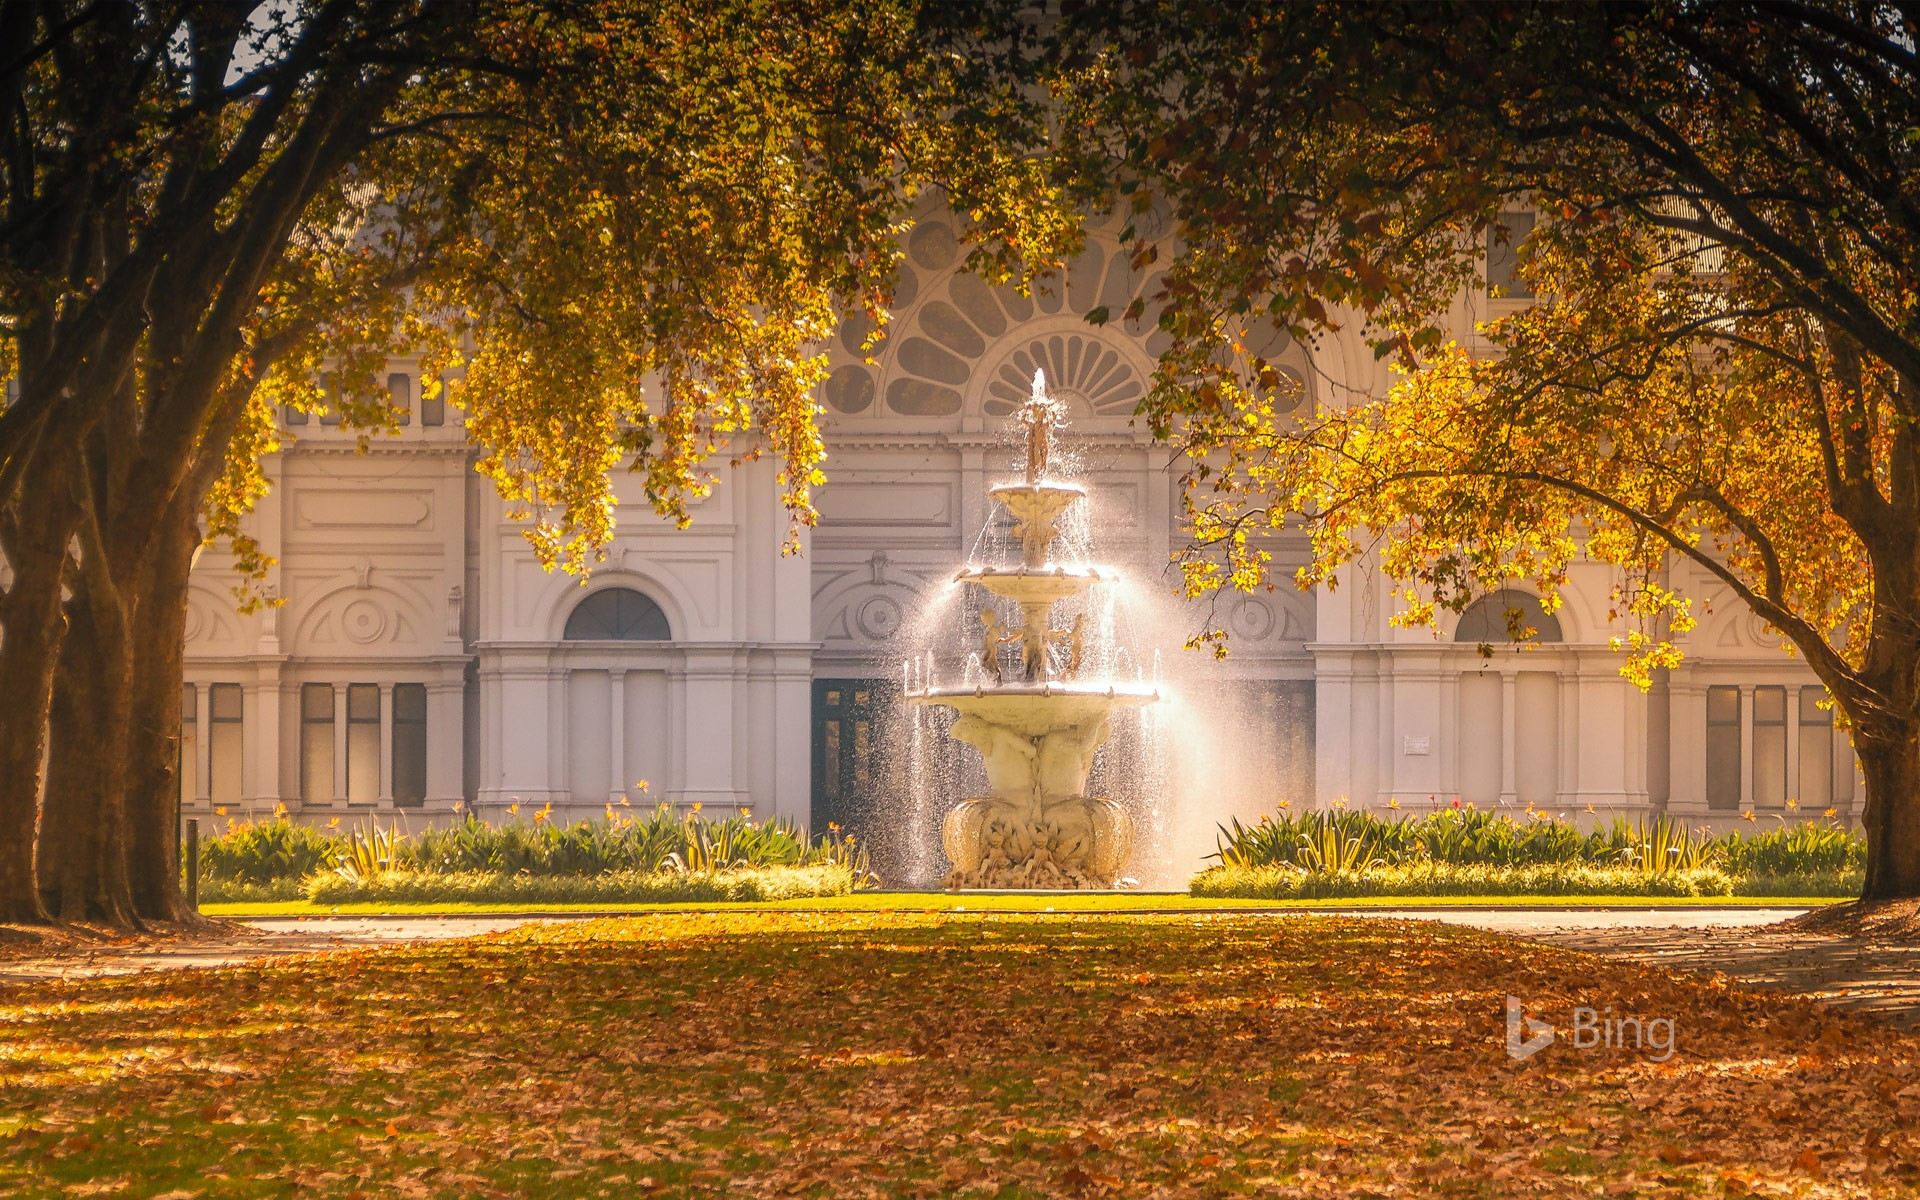 Carlton Gardens fountain and autumn trees catching the sunlight in front of the Royal Exhibition Building, Melbourne